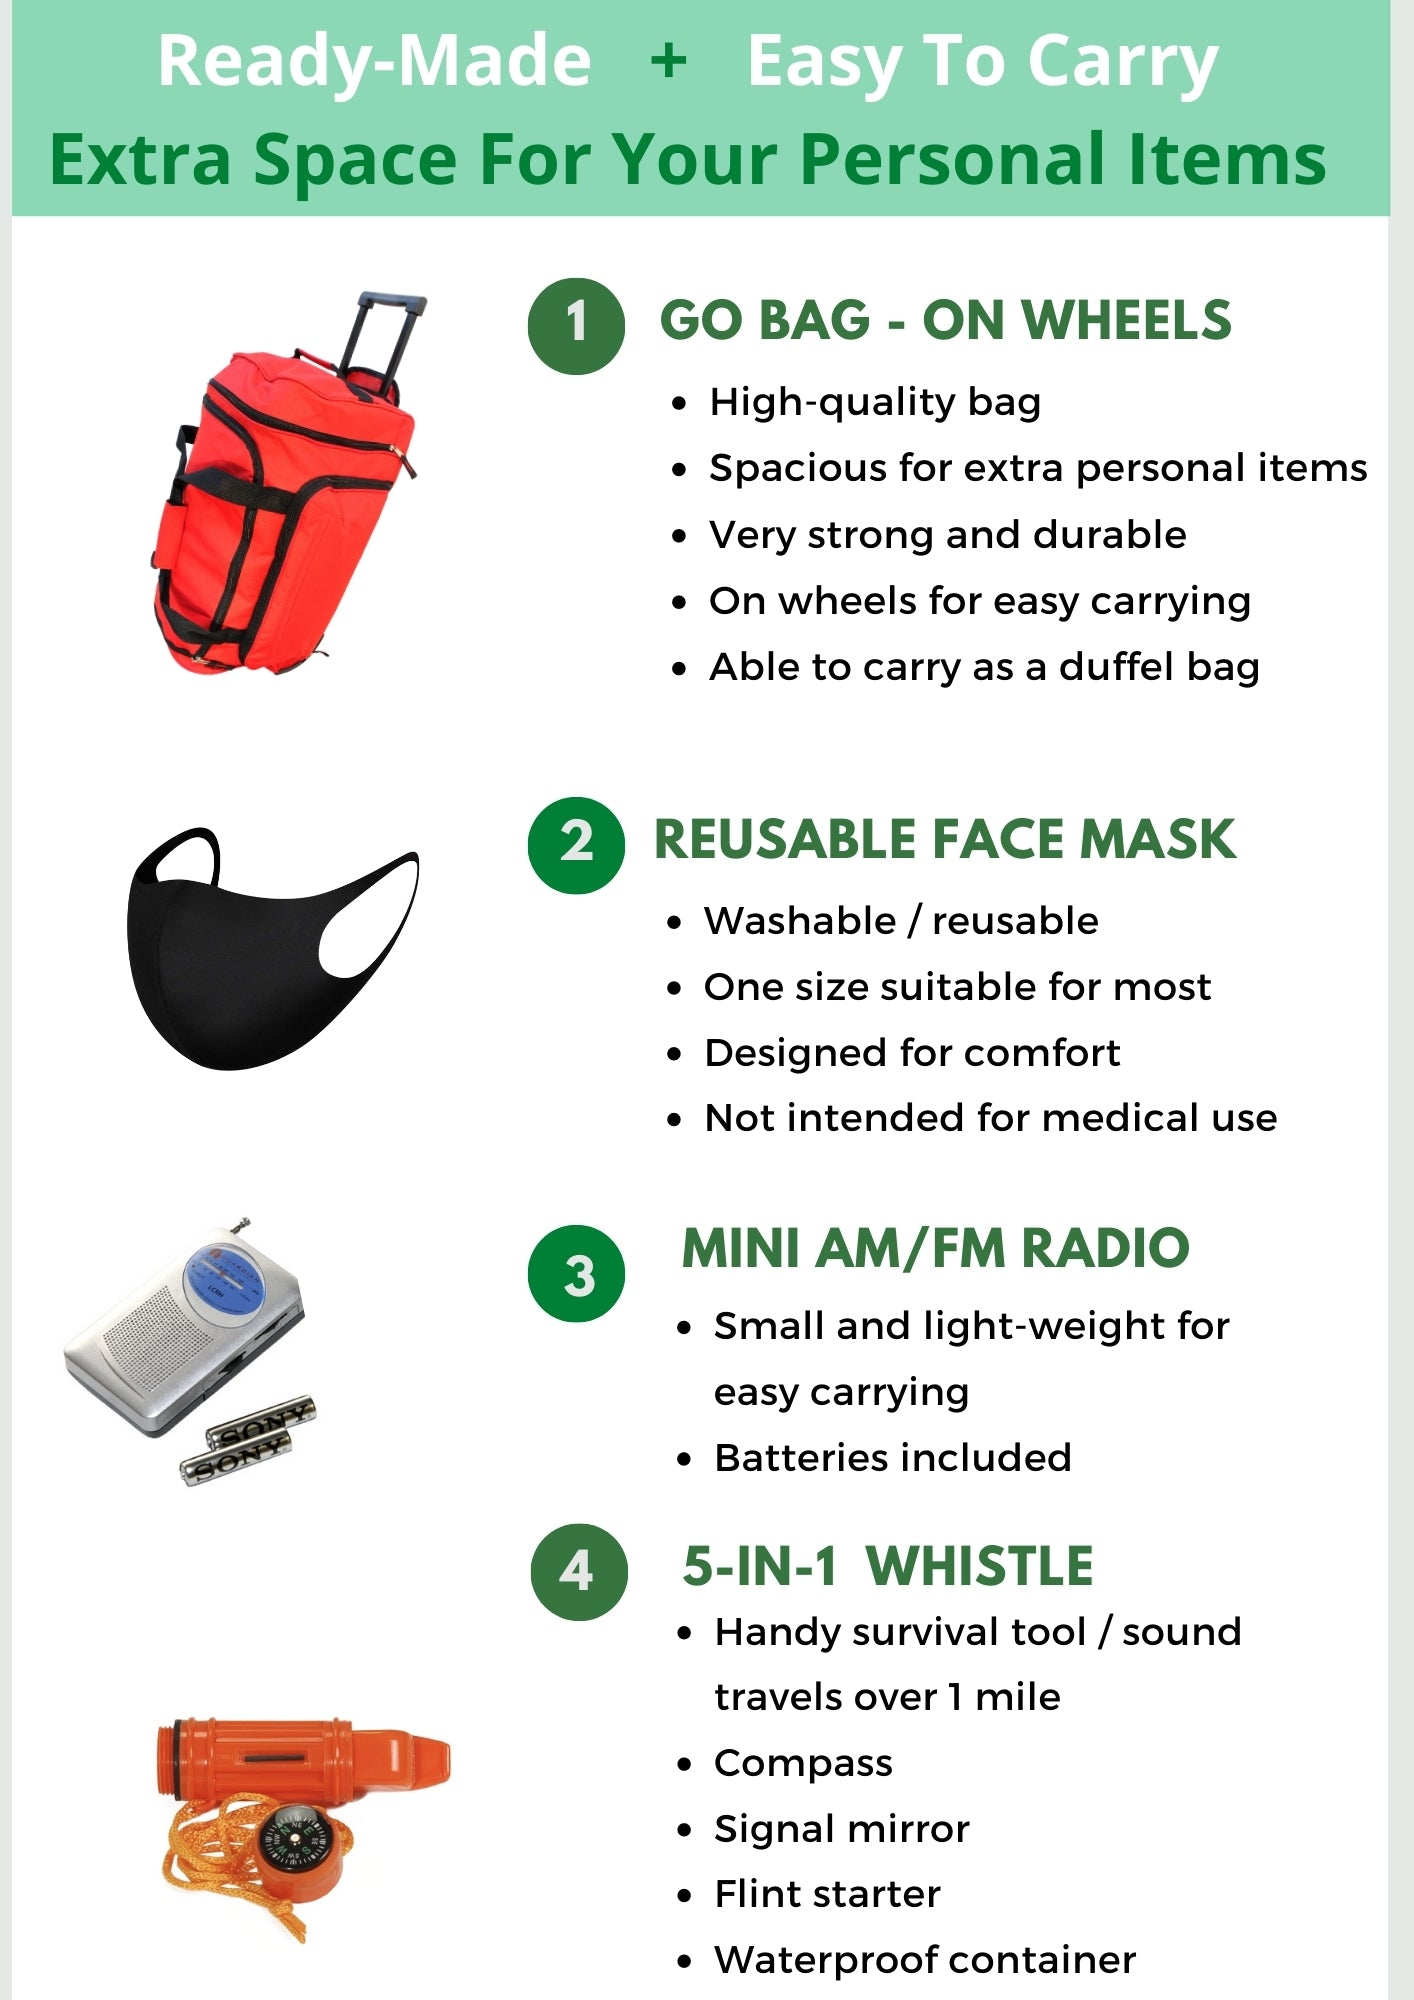 Go Bag On Wheels - Be Ready Bags